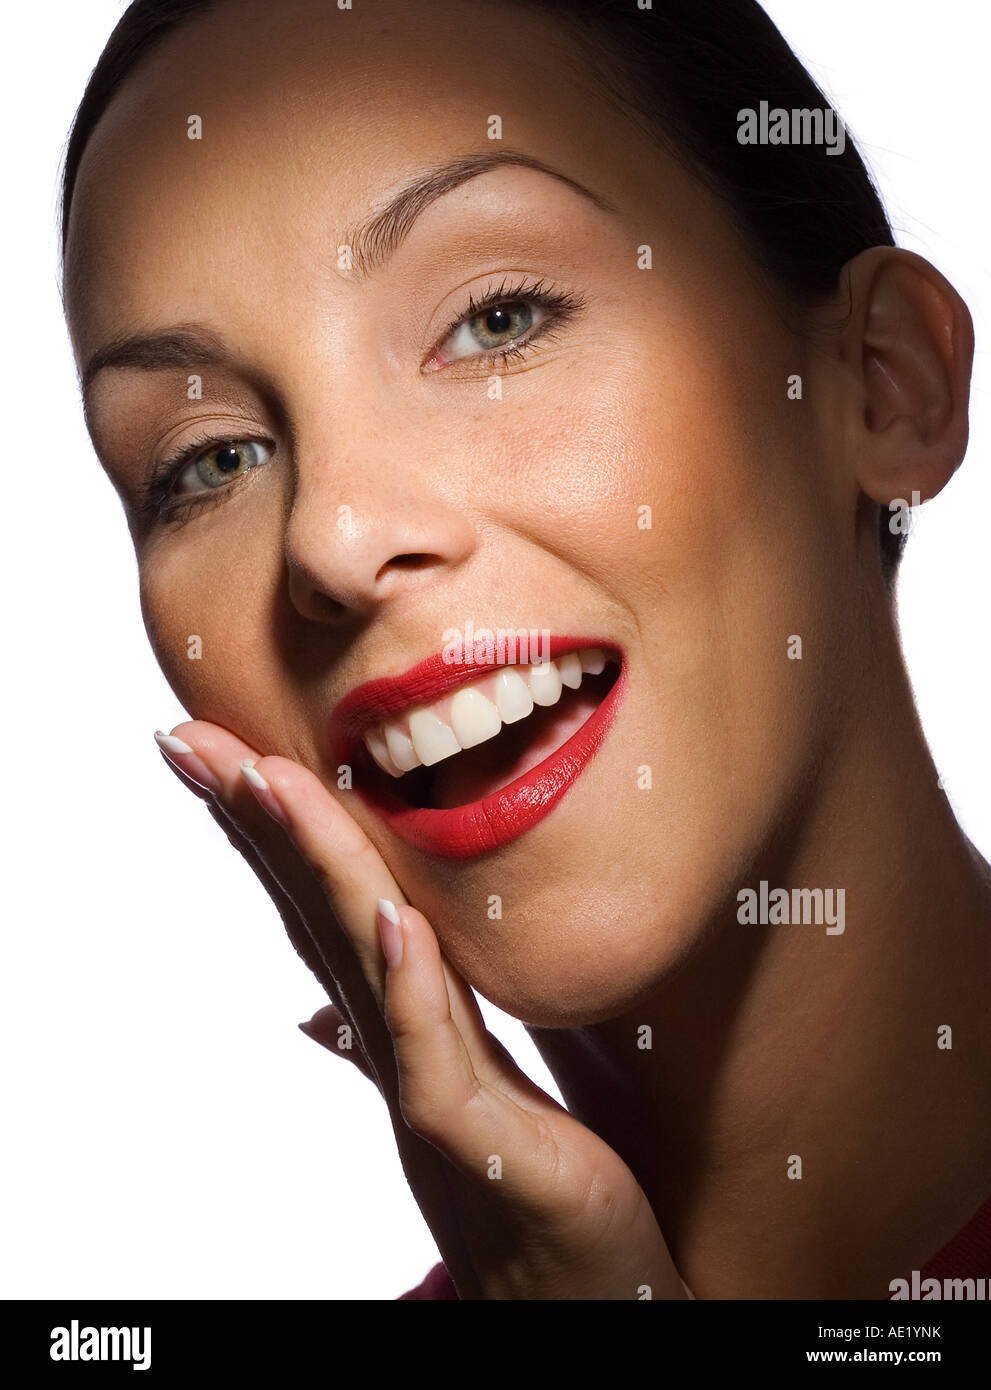 A young woman smiling with her hand up to her cheek. Stock Photo